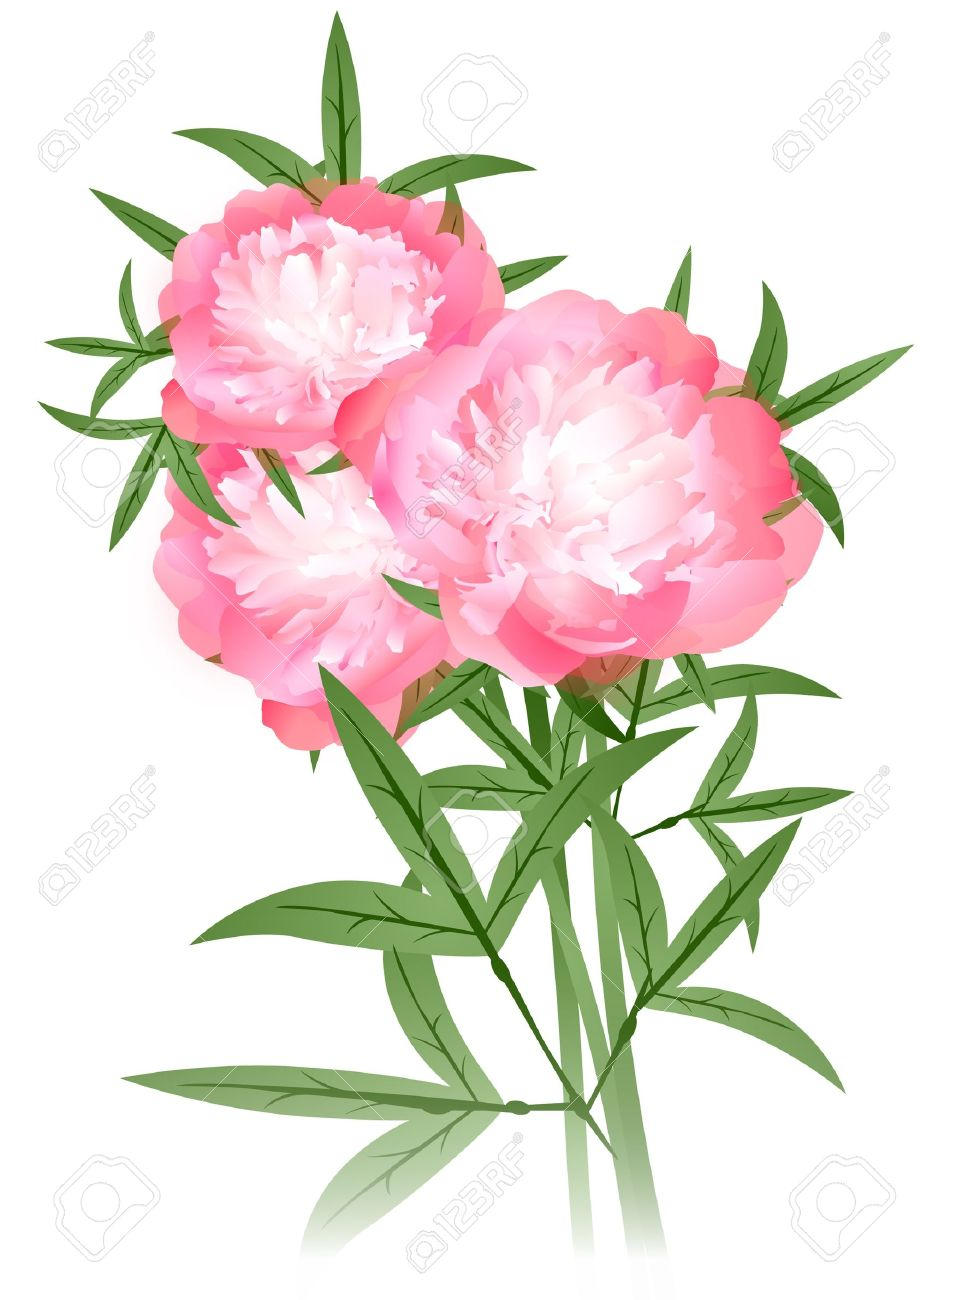 Peony flowers bouquet over white background royalty free cliparts peony flowers bouquet over white background stock vector 12203744 dhlflorist Images